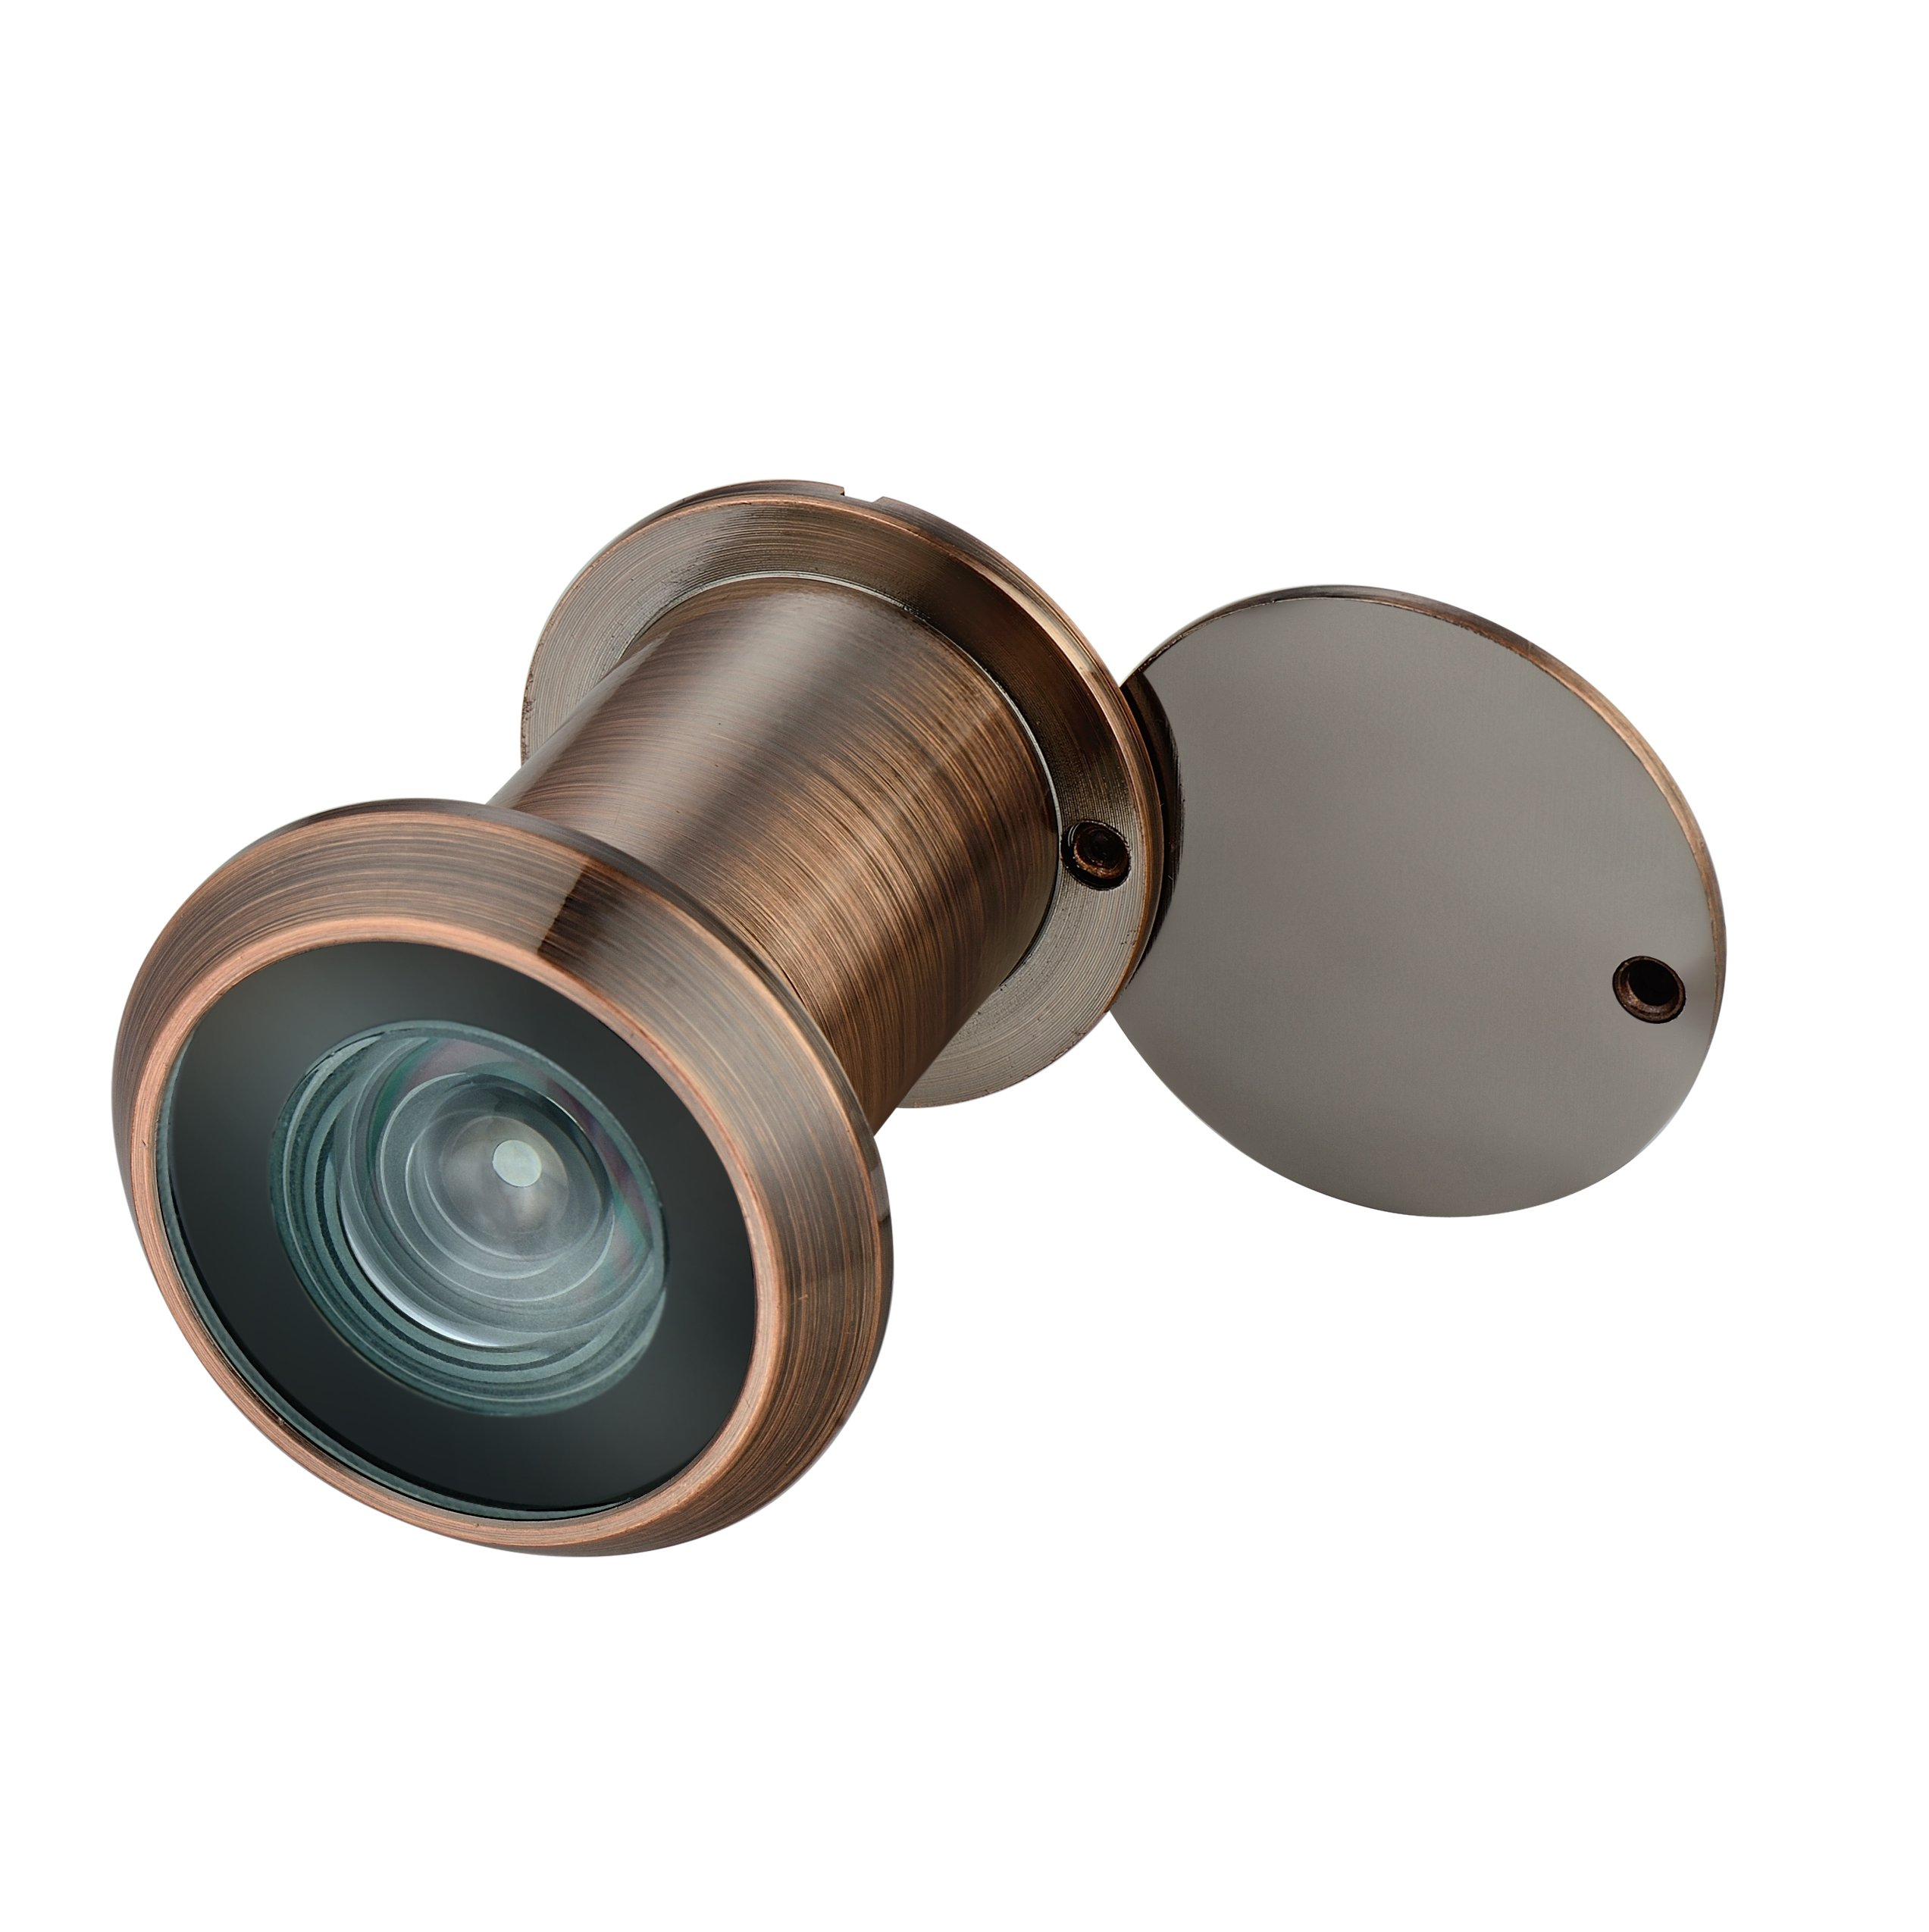 TOGU TG3522YG-AC Brass UL Listed 220-degree Door Viewer with Heavy Duty Privacy Cover for 1-3/8'' to 2-9/25'' Doors, Antique Copper Finish